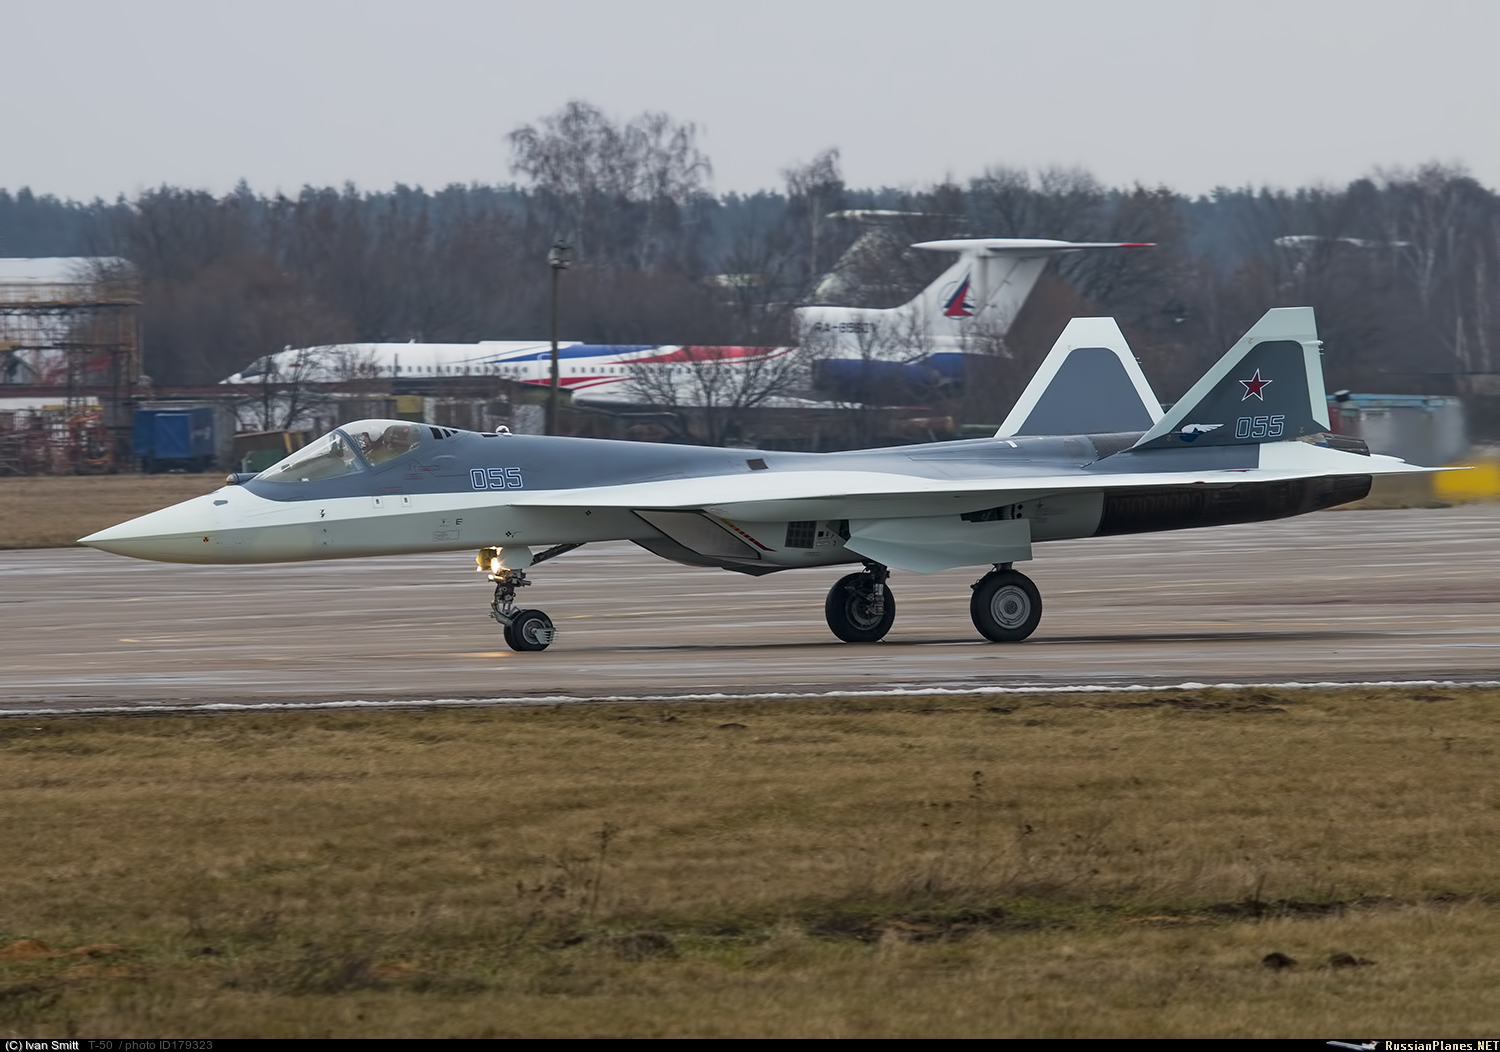 Airplane T-50-11 arrived in Zhukovsky 58